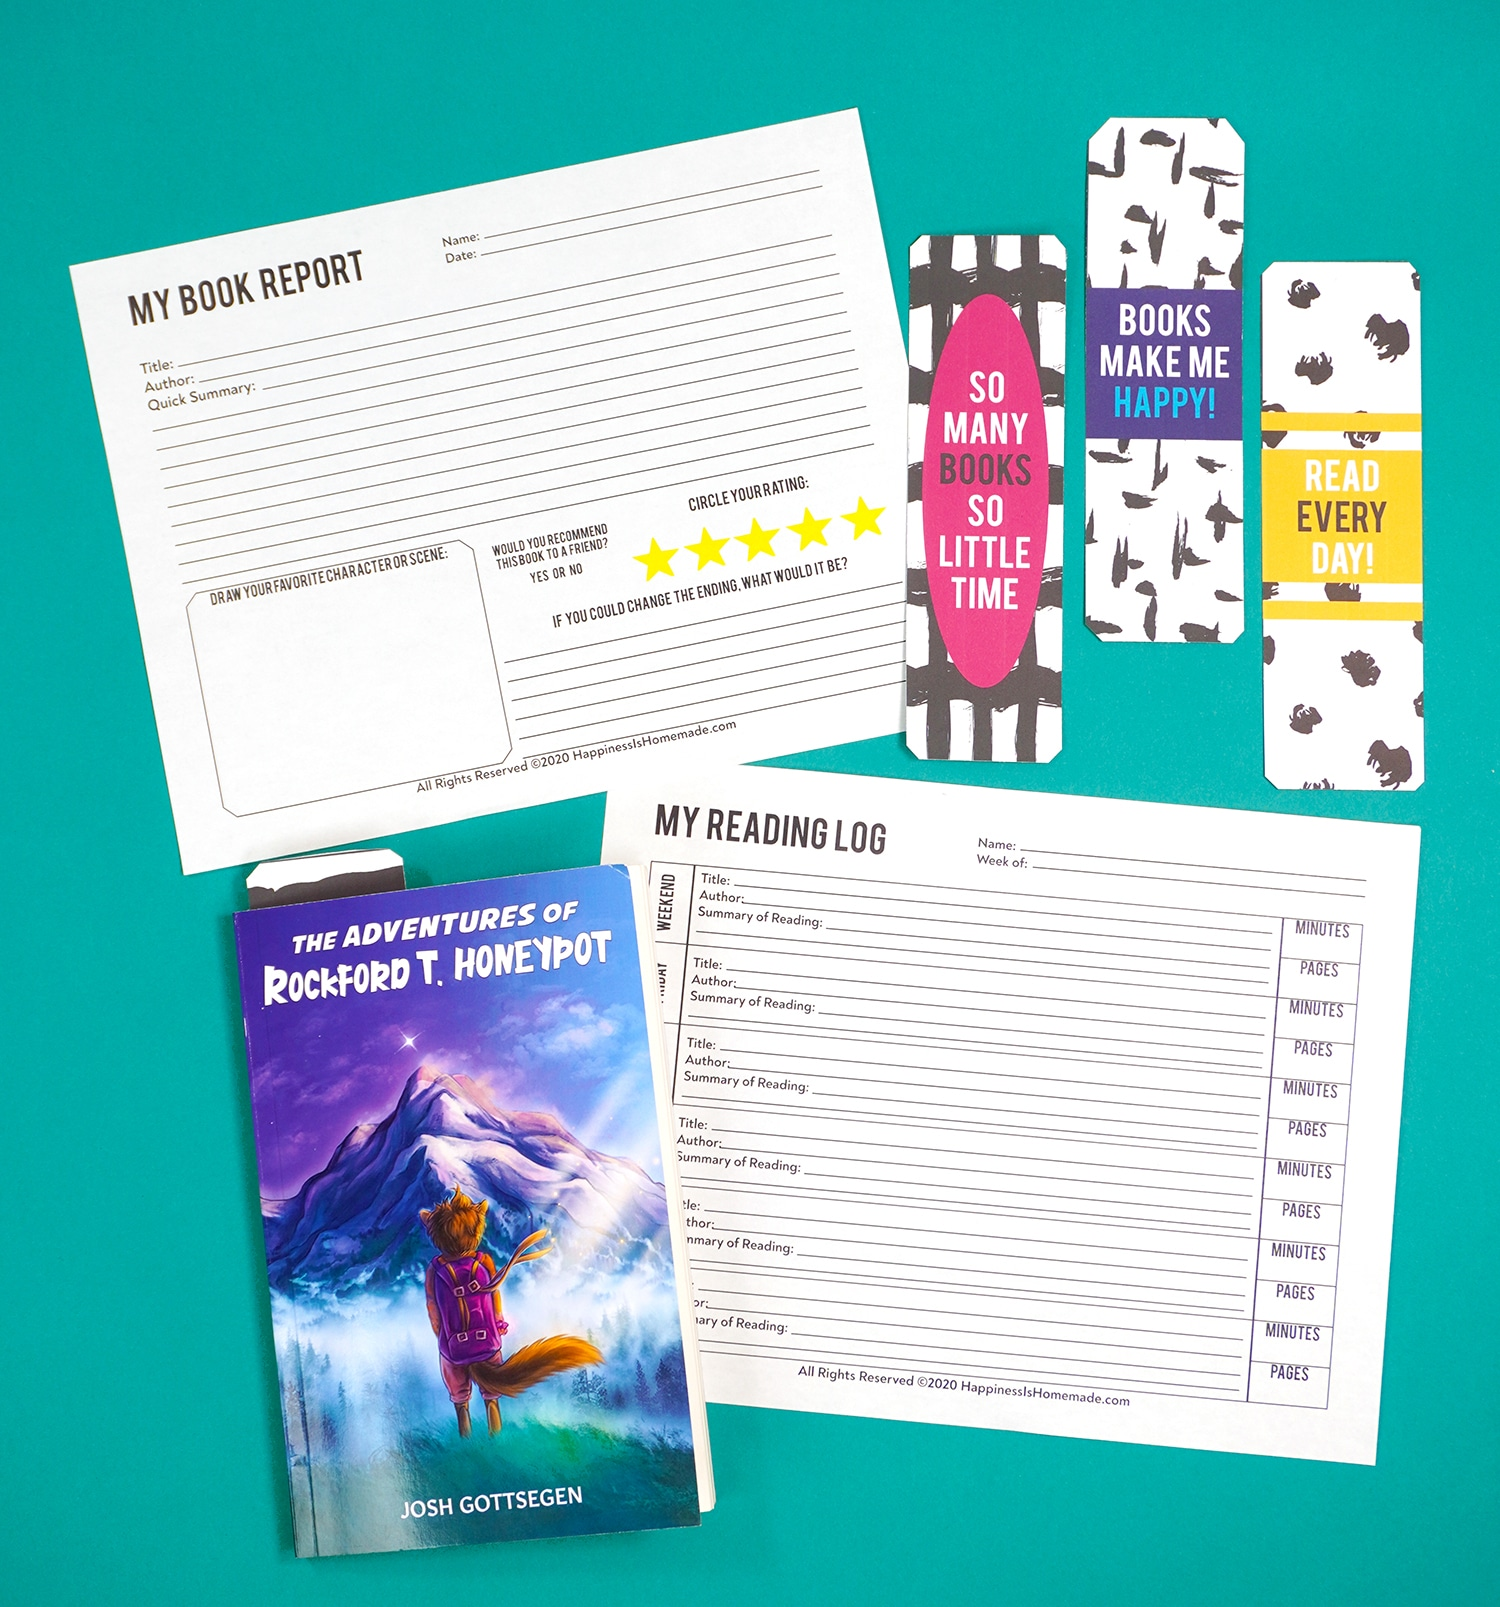 Printable reading log and book report with bookmarks and kids book on teal background